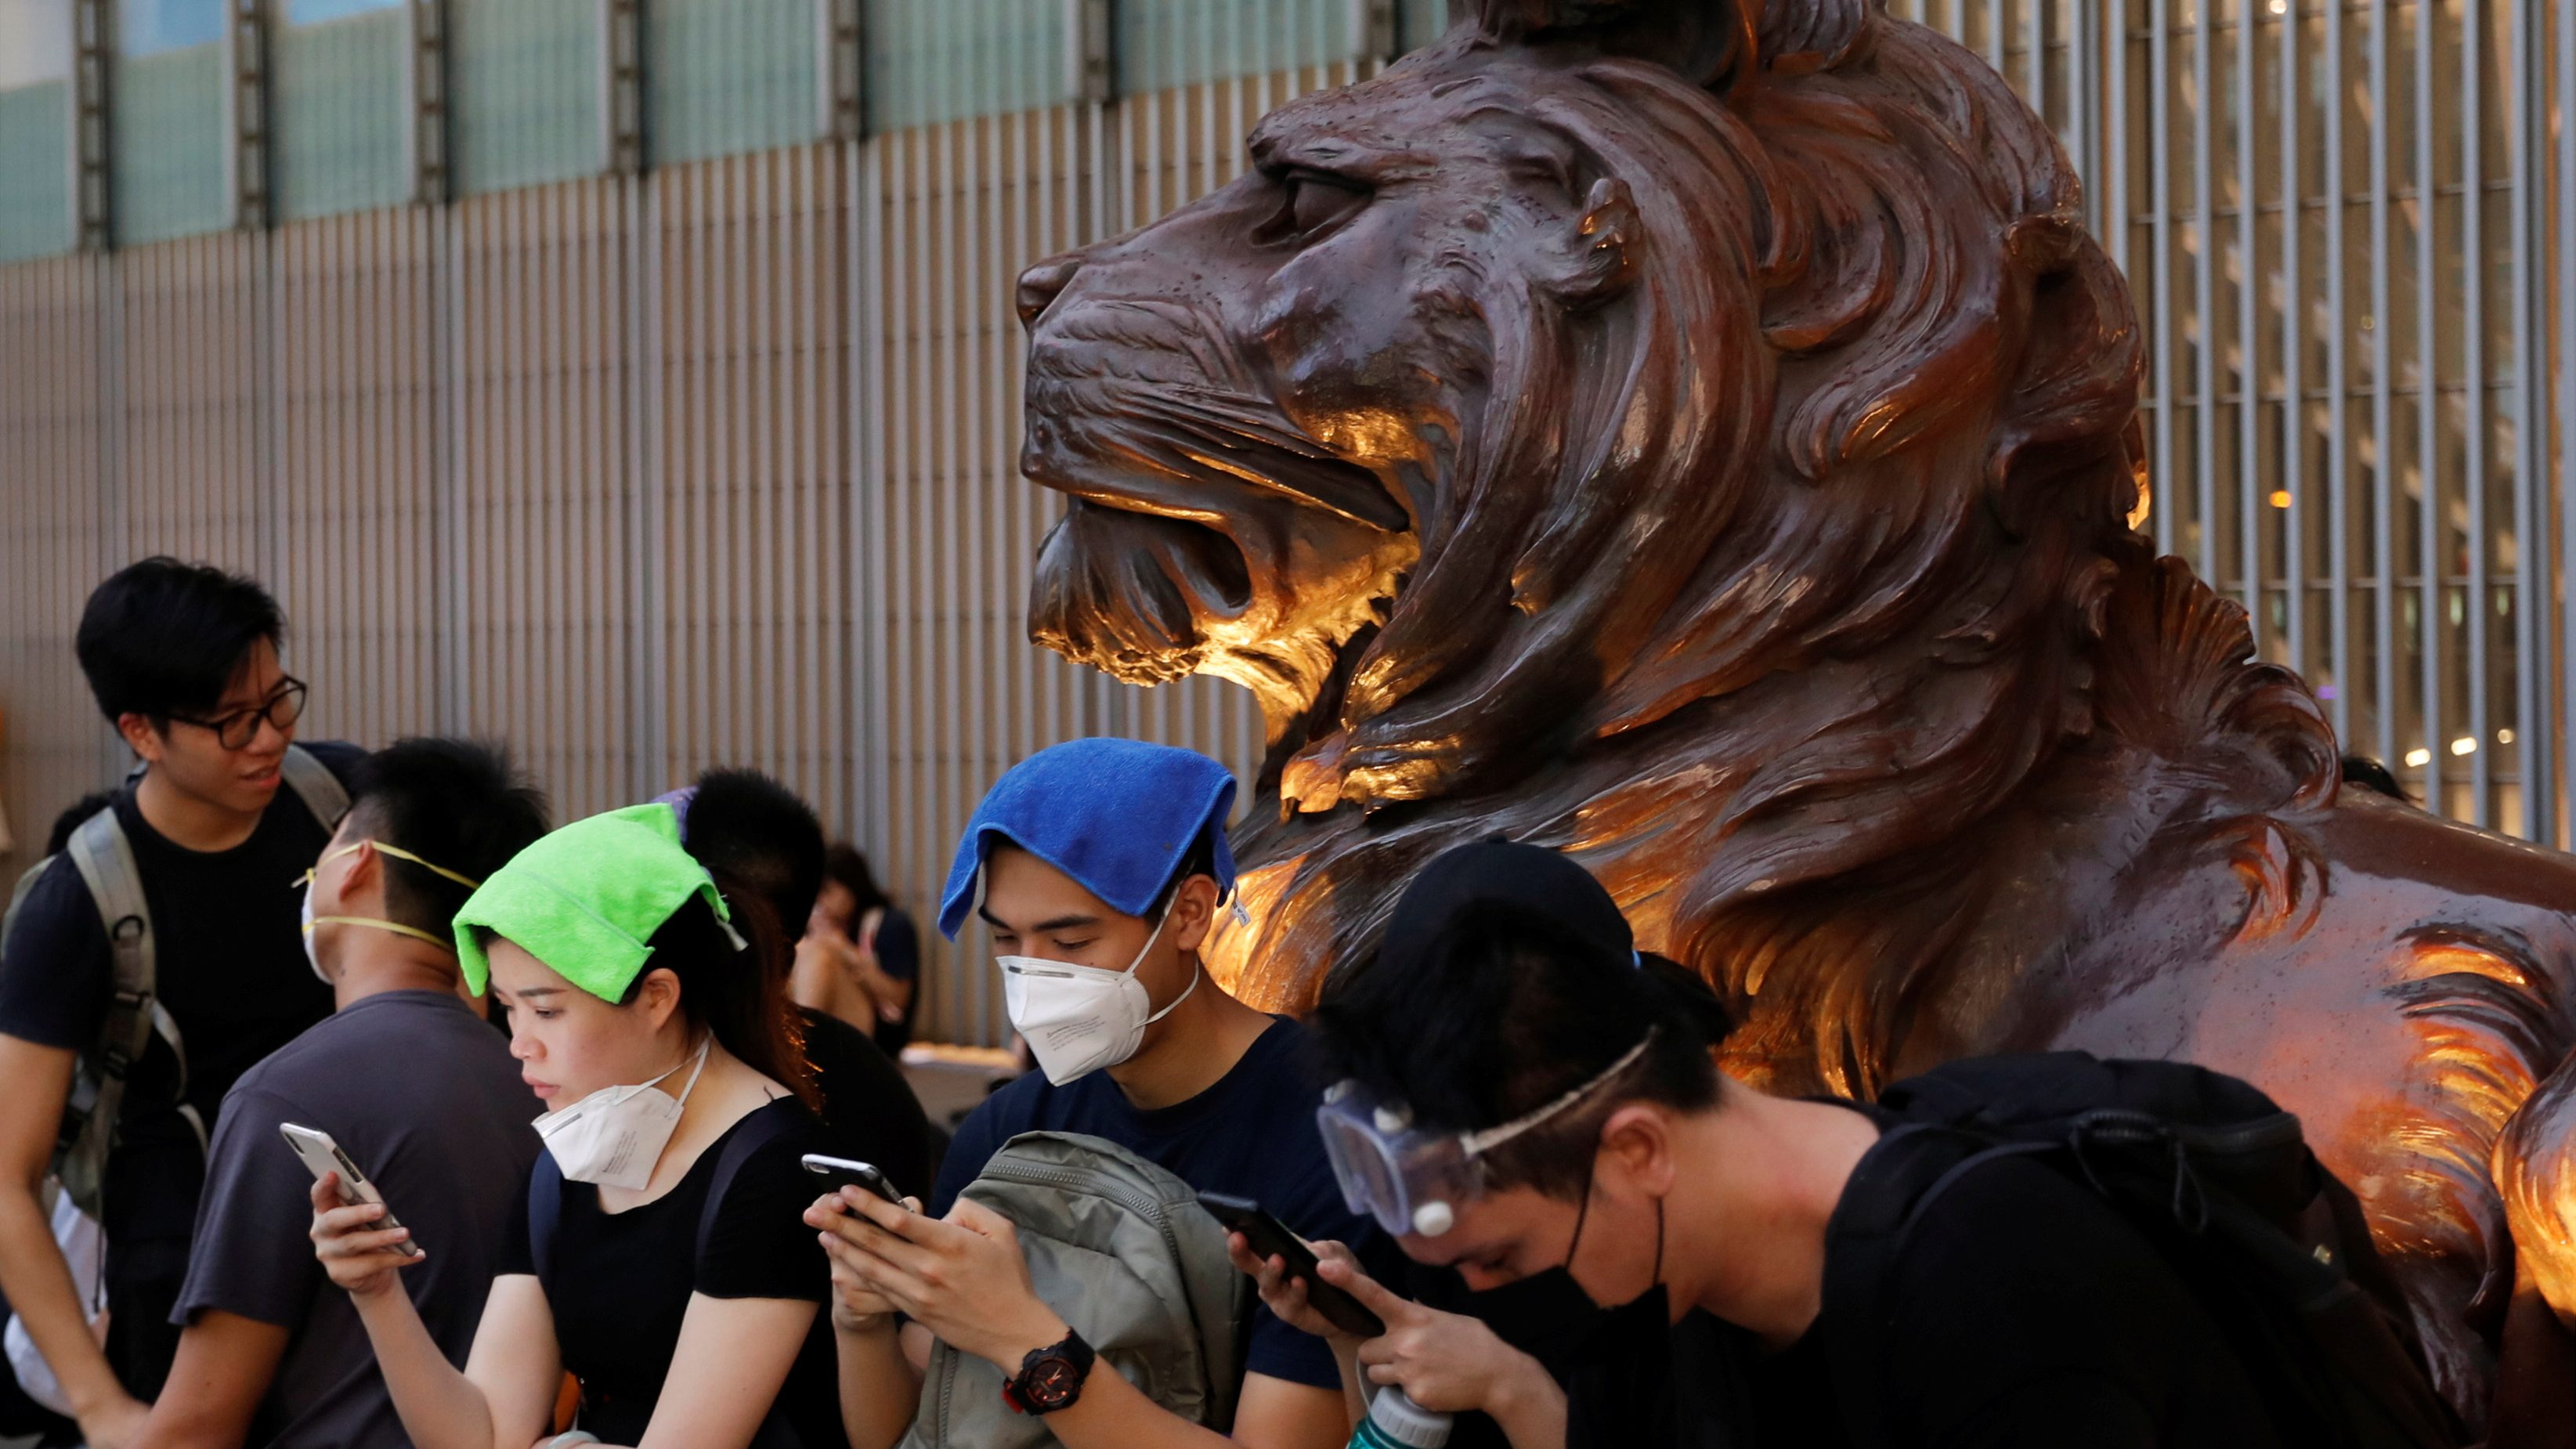 Protesters use their mobile phones as they stand outside HSBC bank headquarters during a demonstration against a proposed extradition bill in Hong Kong, China June 12, 2019.